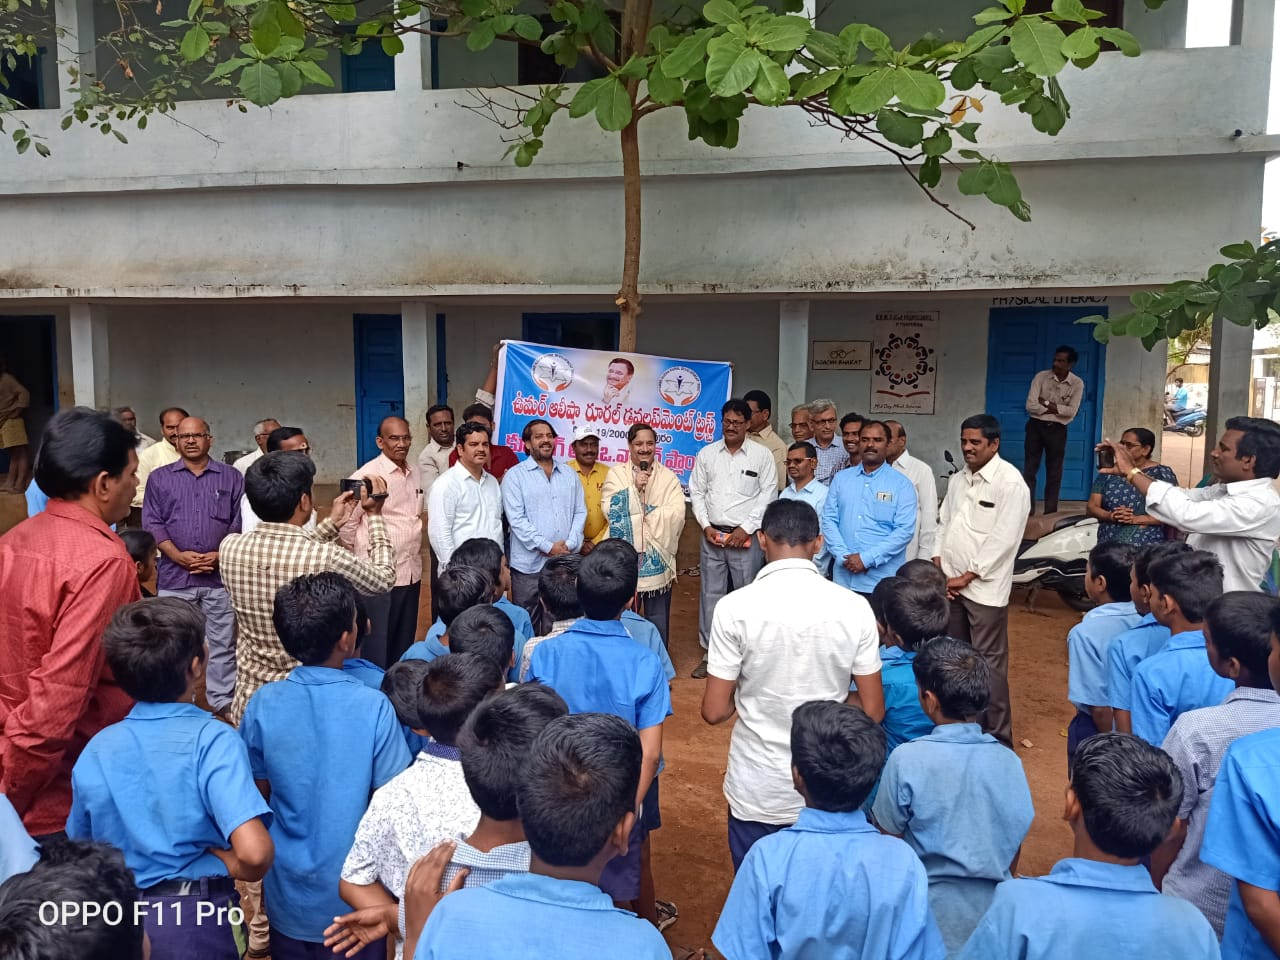 Speech by Dr.Umar Alisha, Chairman of UARDT during inauguration of RO water plant at  R.R.BH.R GOVT HIGH SCHOOL, Pithapuram